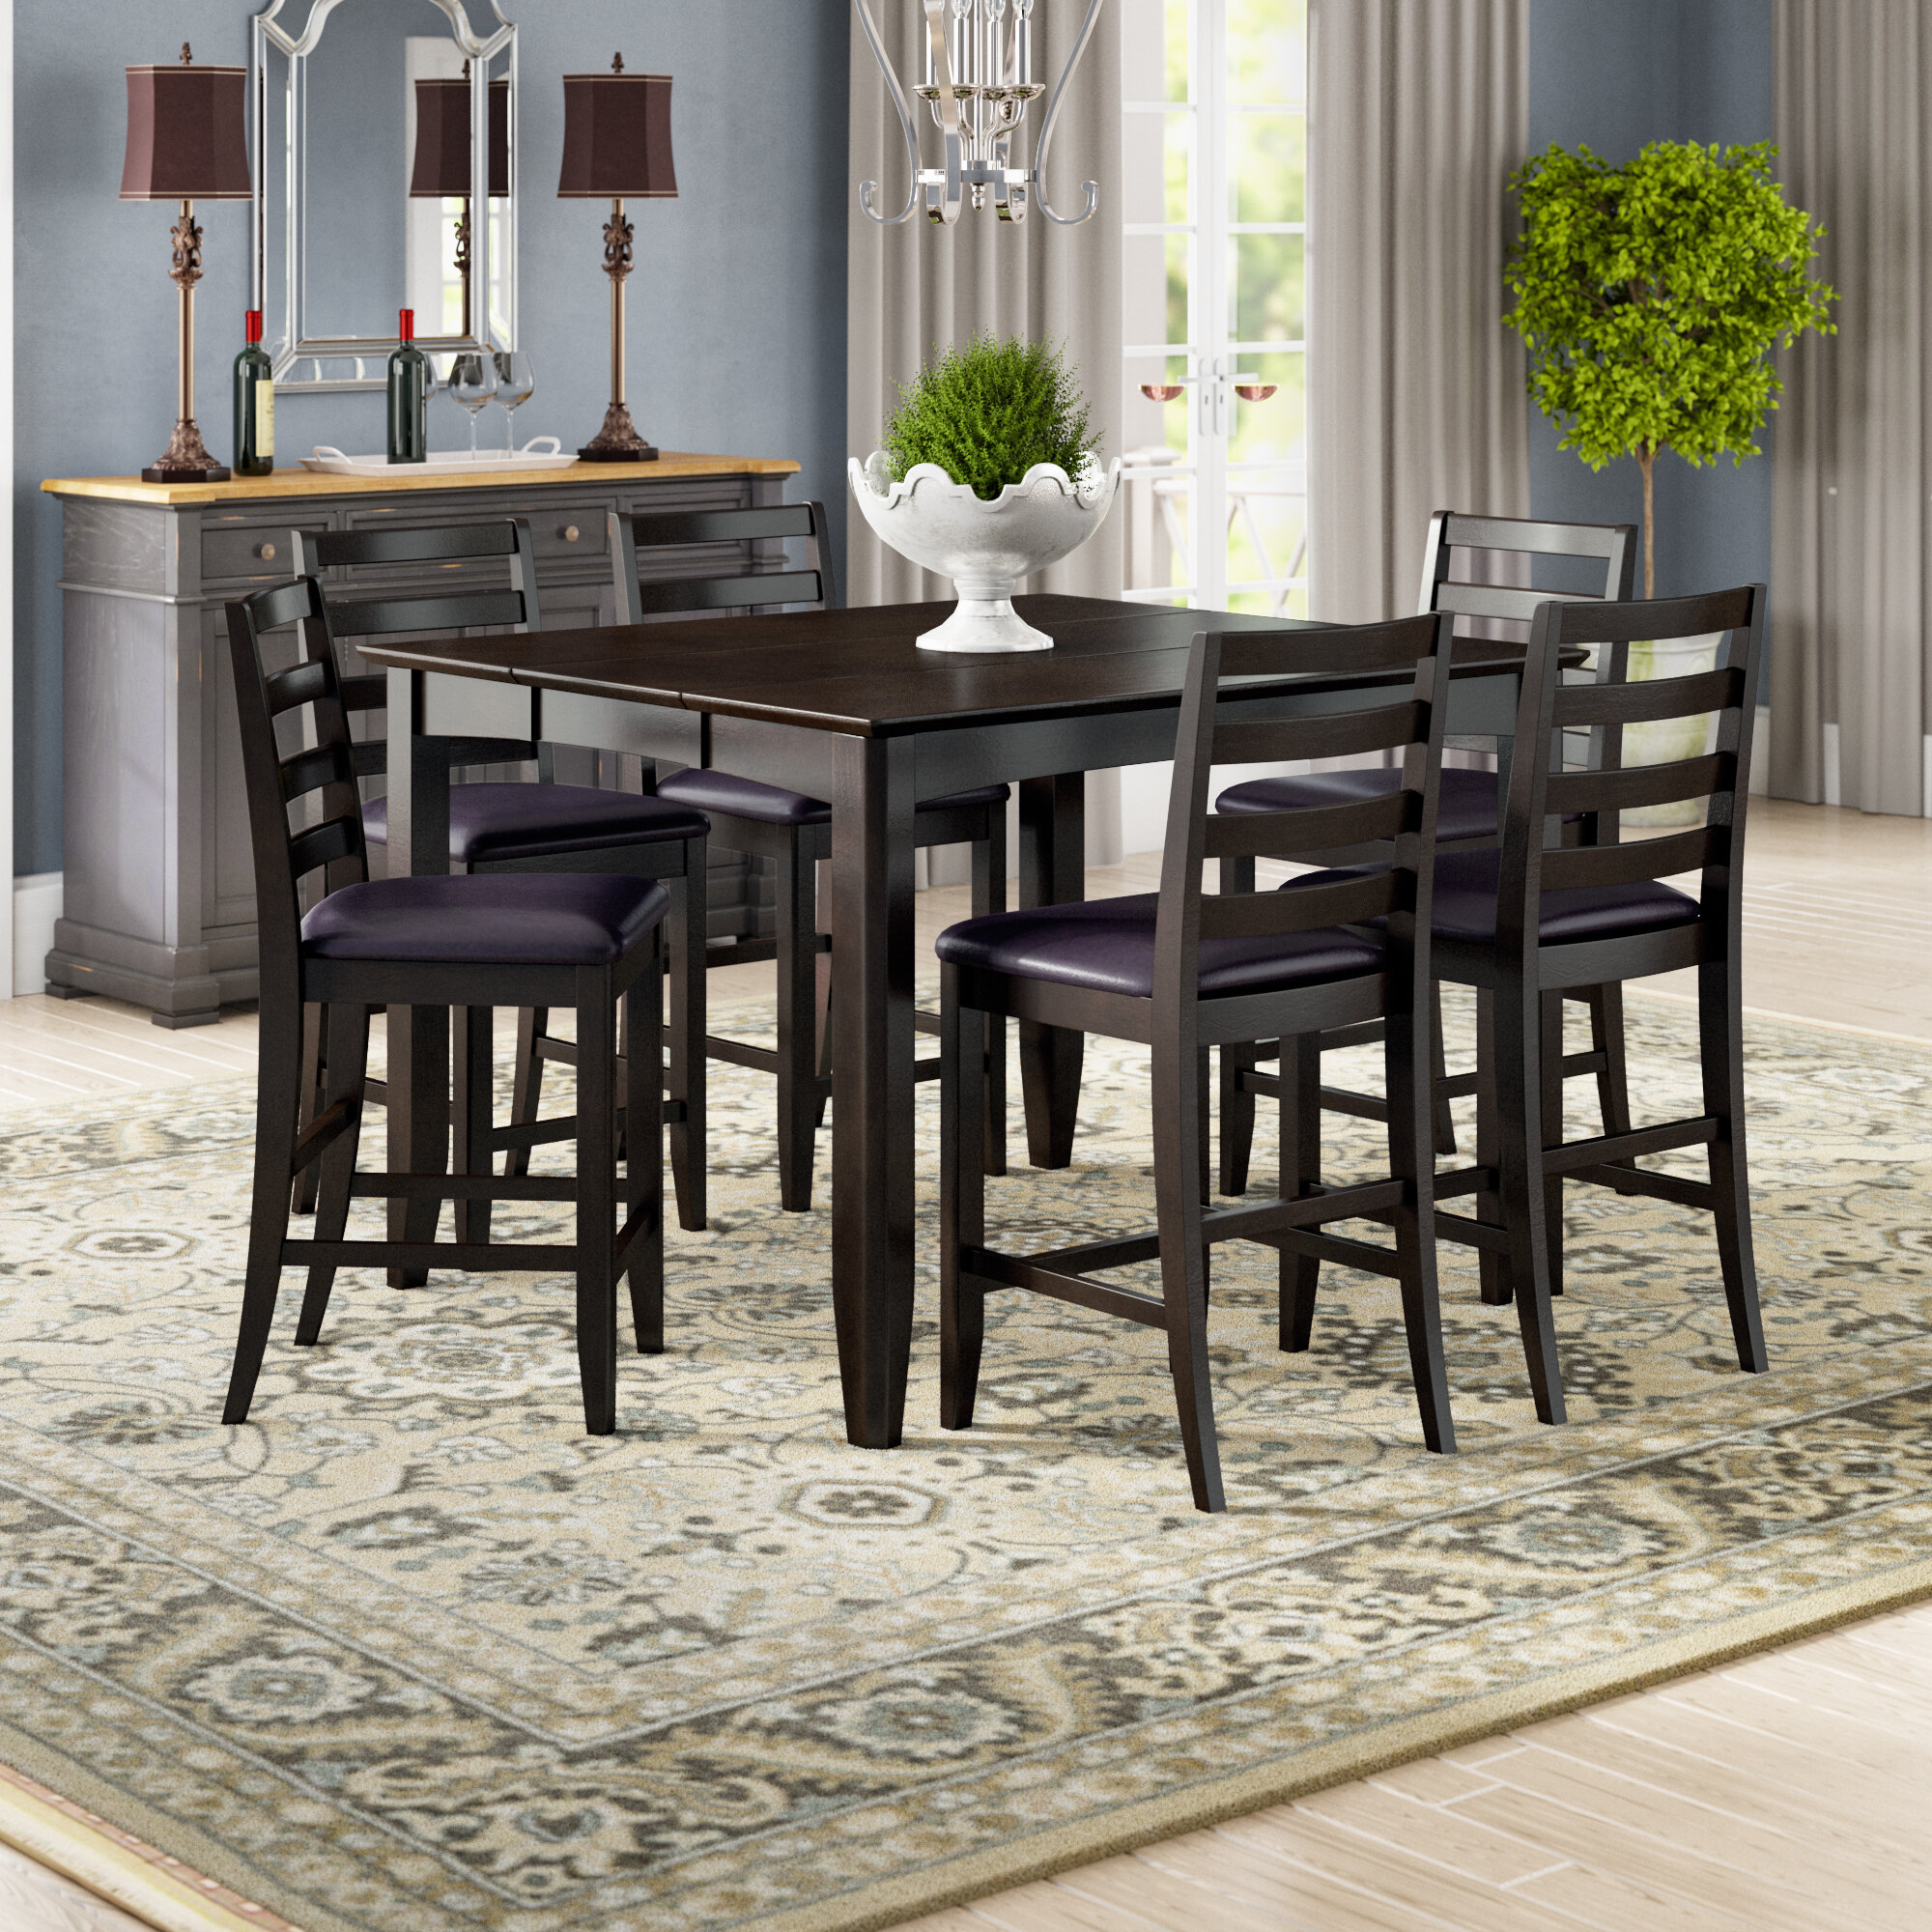 Charmant Krull 7 Piece Counter Height Dining Set